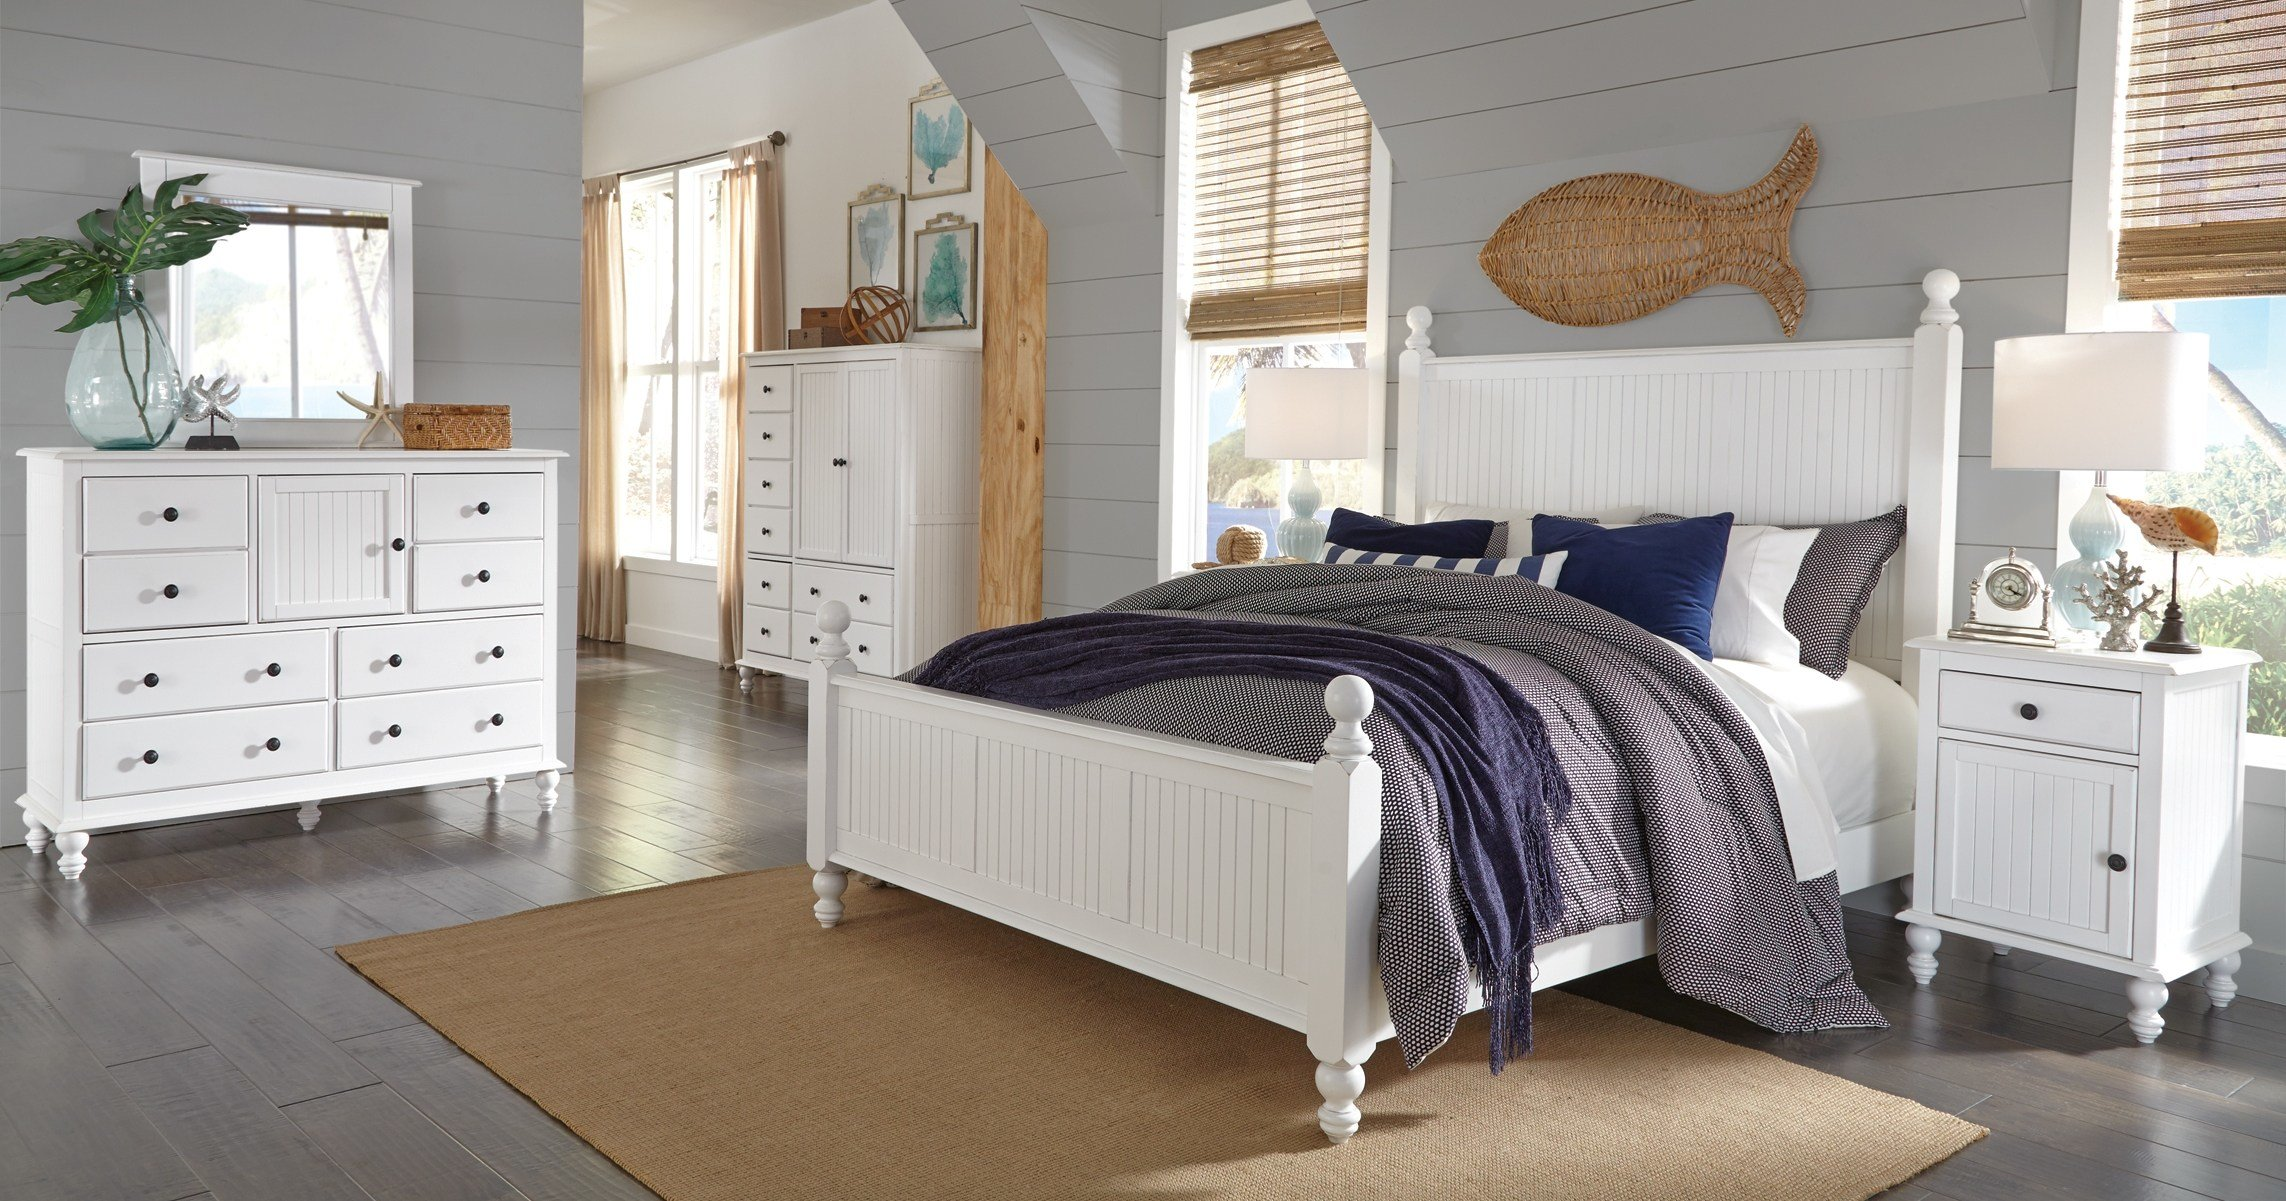 Best Jacksonville S Real Wood Furniture Store Wood You Furniture Jacksonville Fl With Pictures